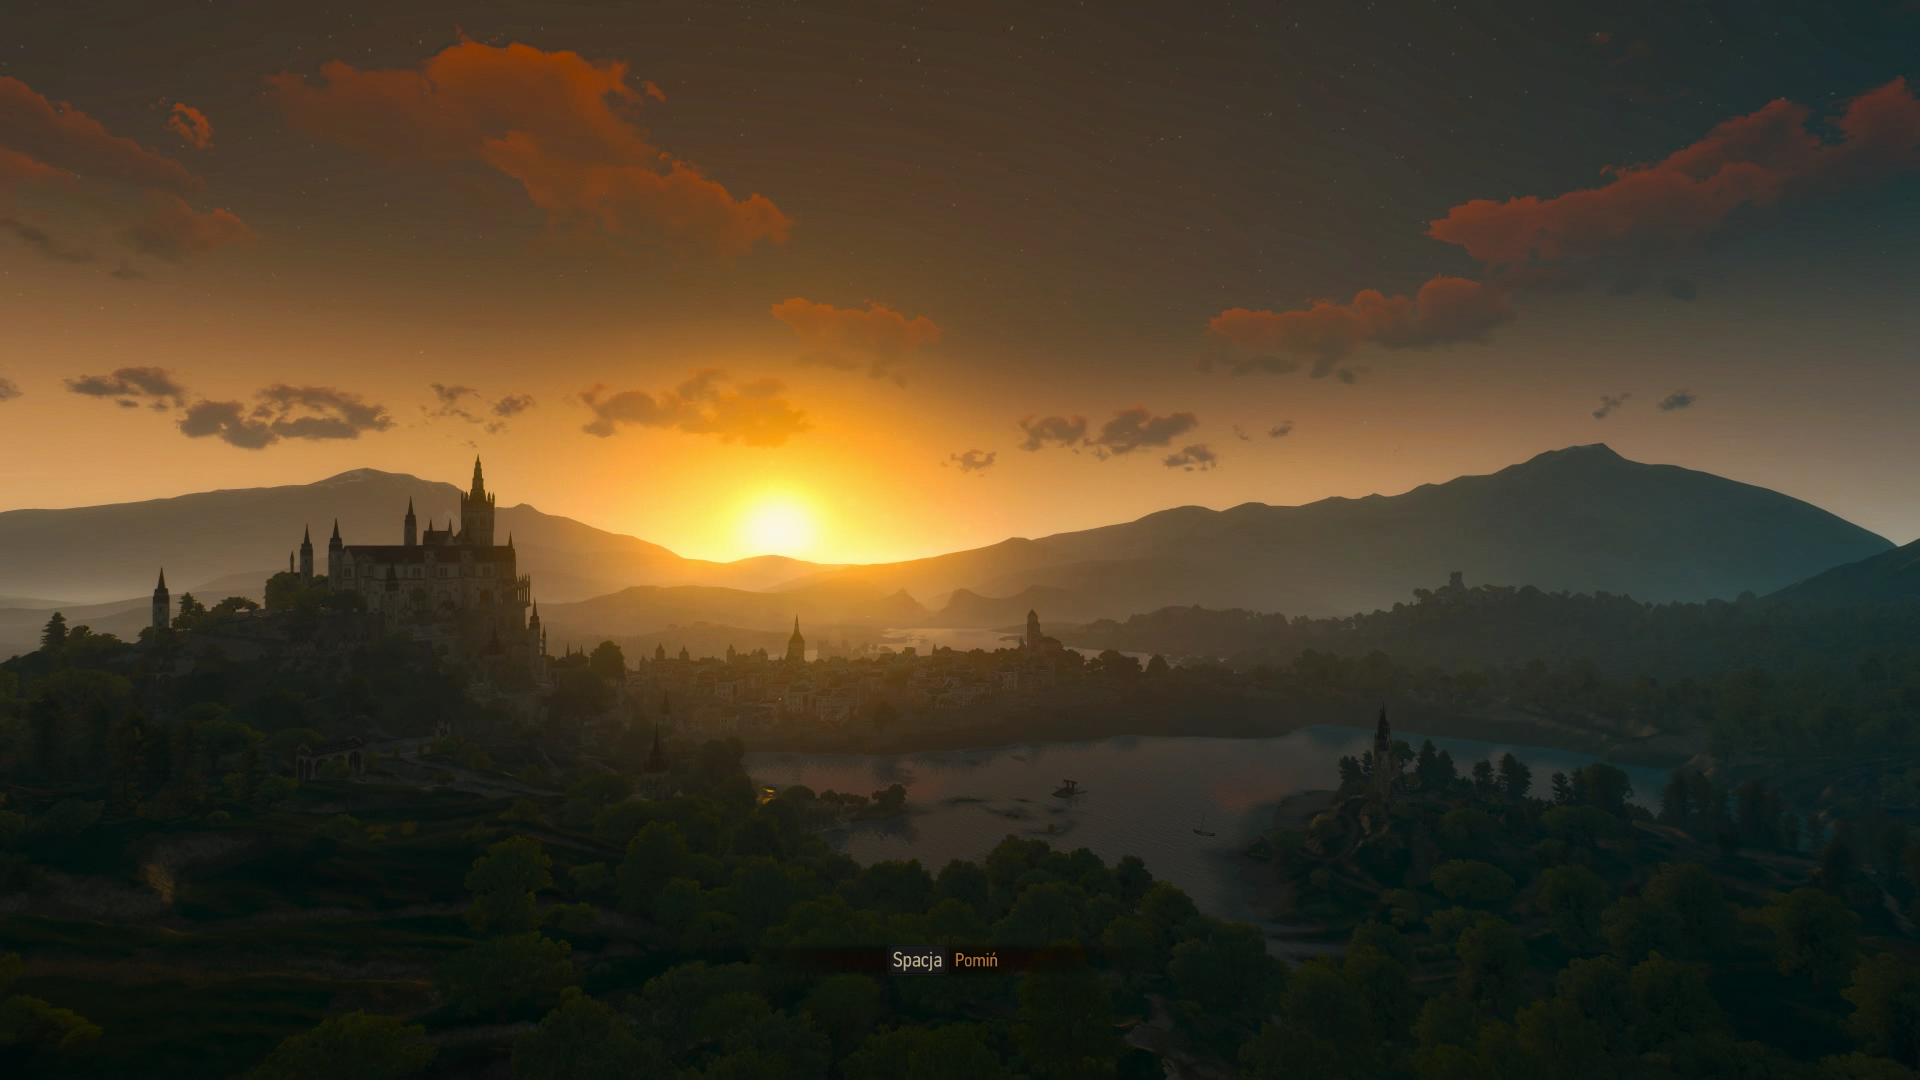 The Witcher 3 27.12.2018 22_28_23.png - Witcher 3: Wild Hunt, the